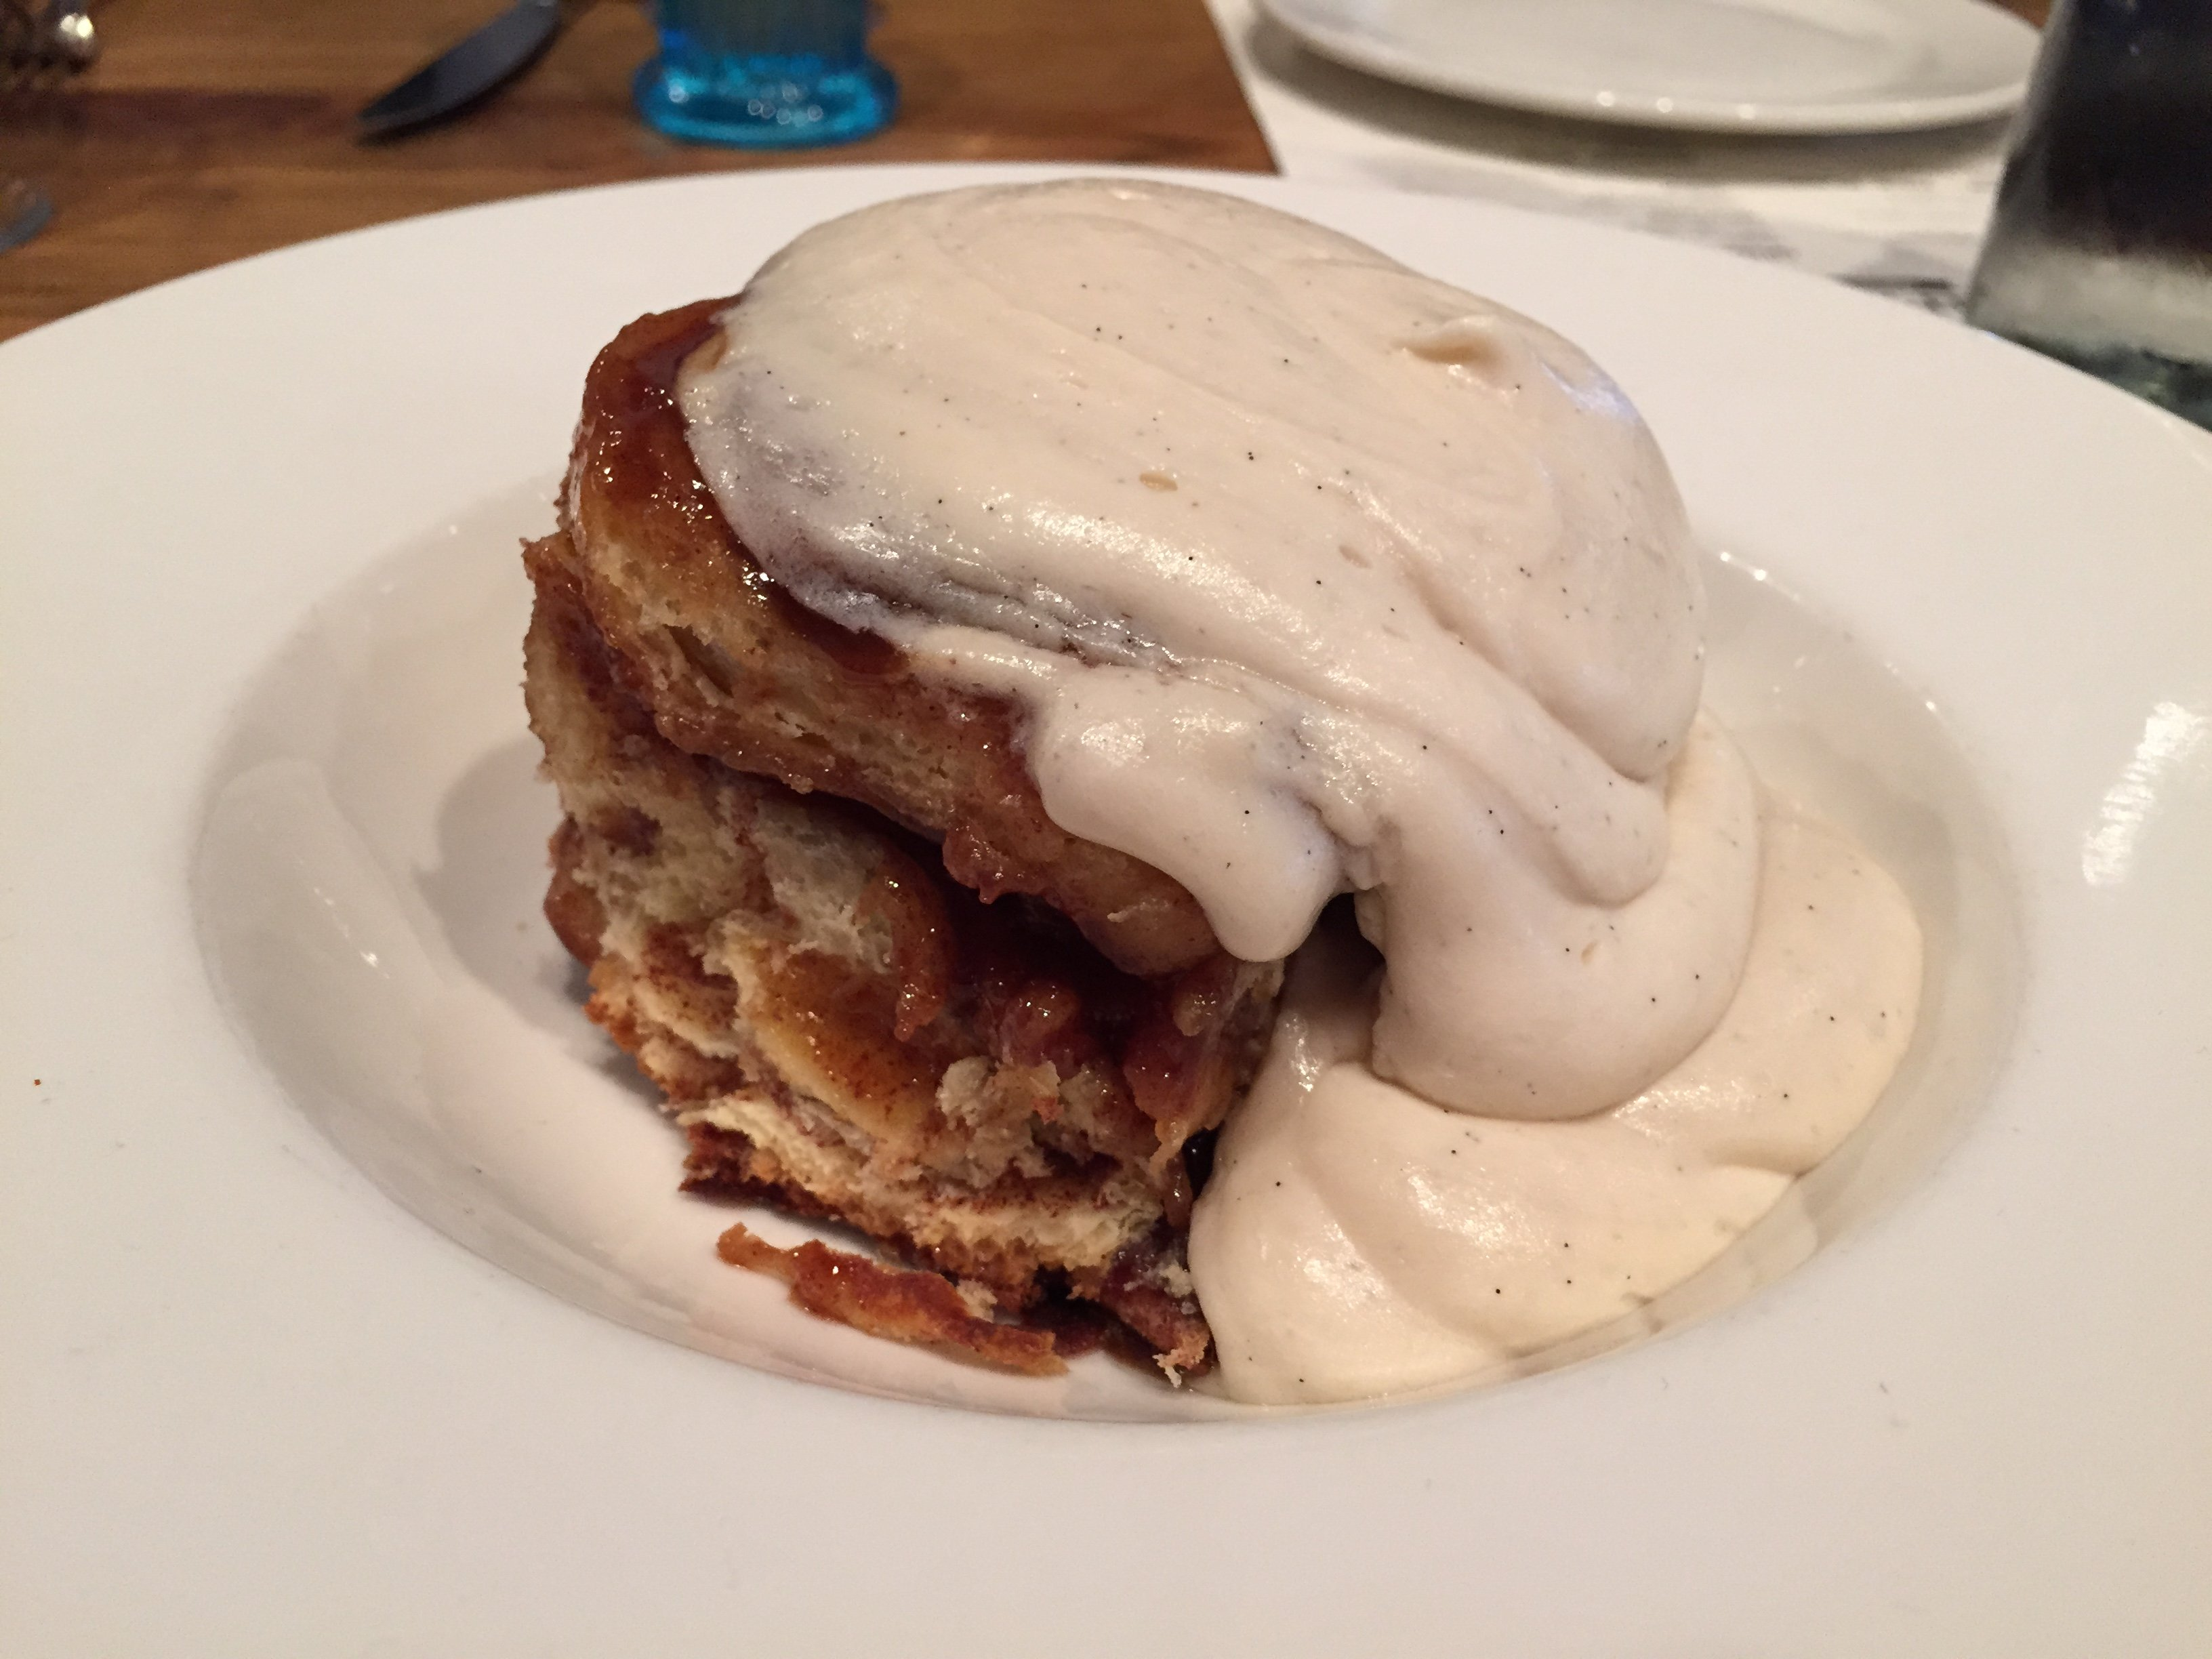 Sticky Bun — People were licking their fingers